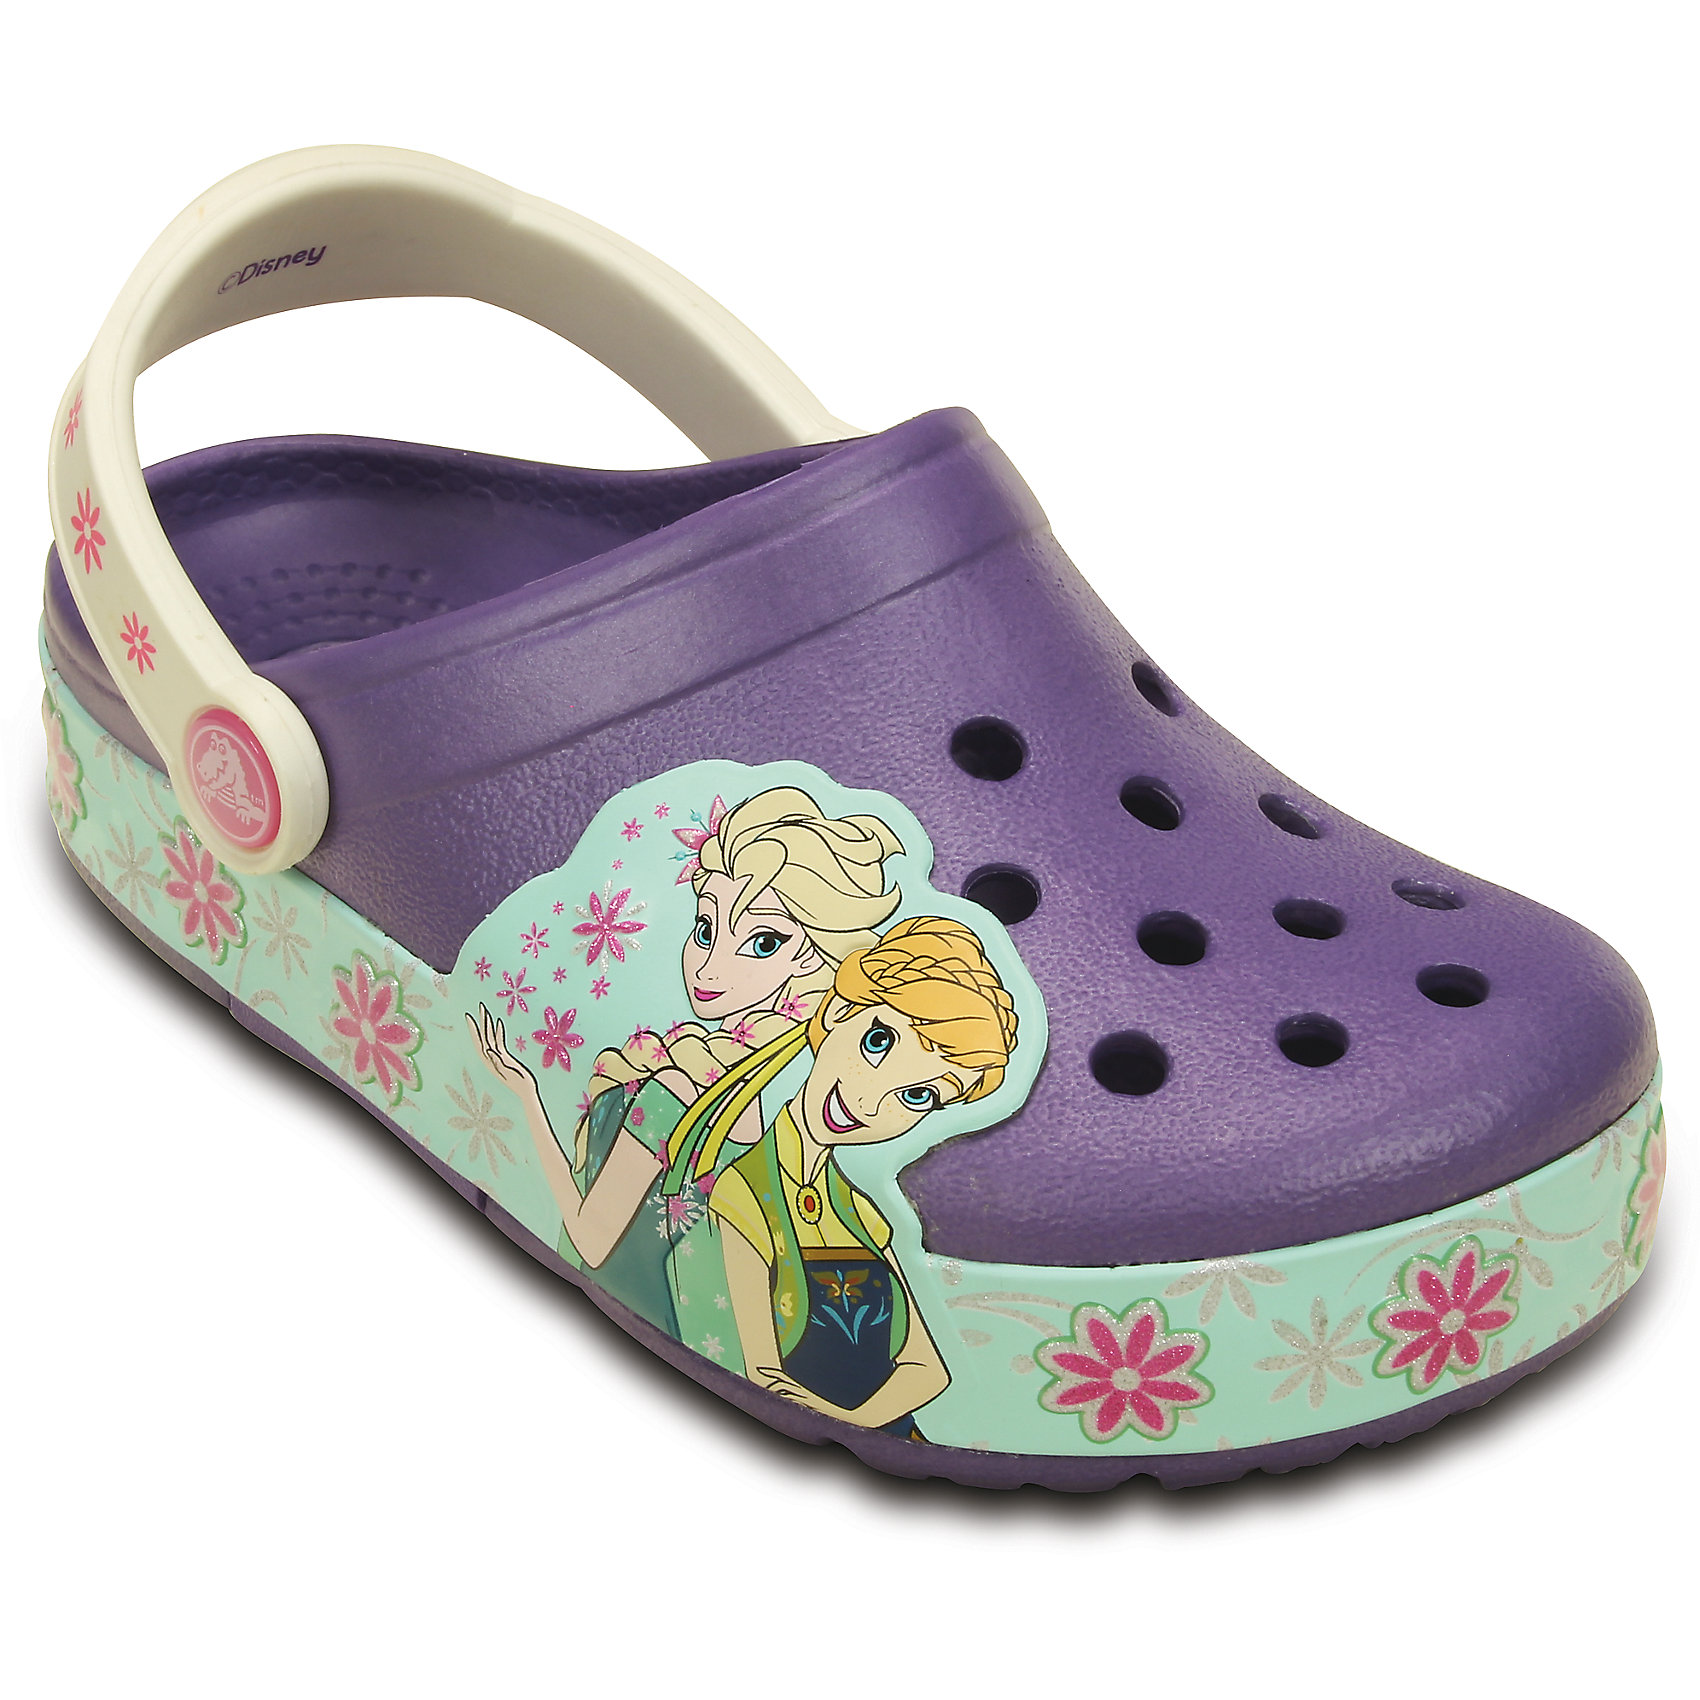 crocs Сабо со светодиодами Kids' CrocsLights Frozen Fever Clog для девочки Crocs  crocs crocslights butterfly ps clog toddler little kid